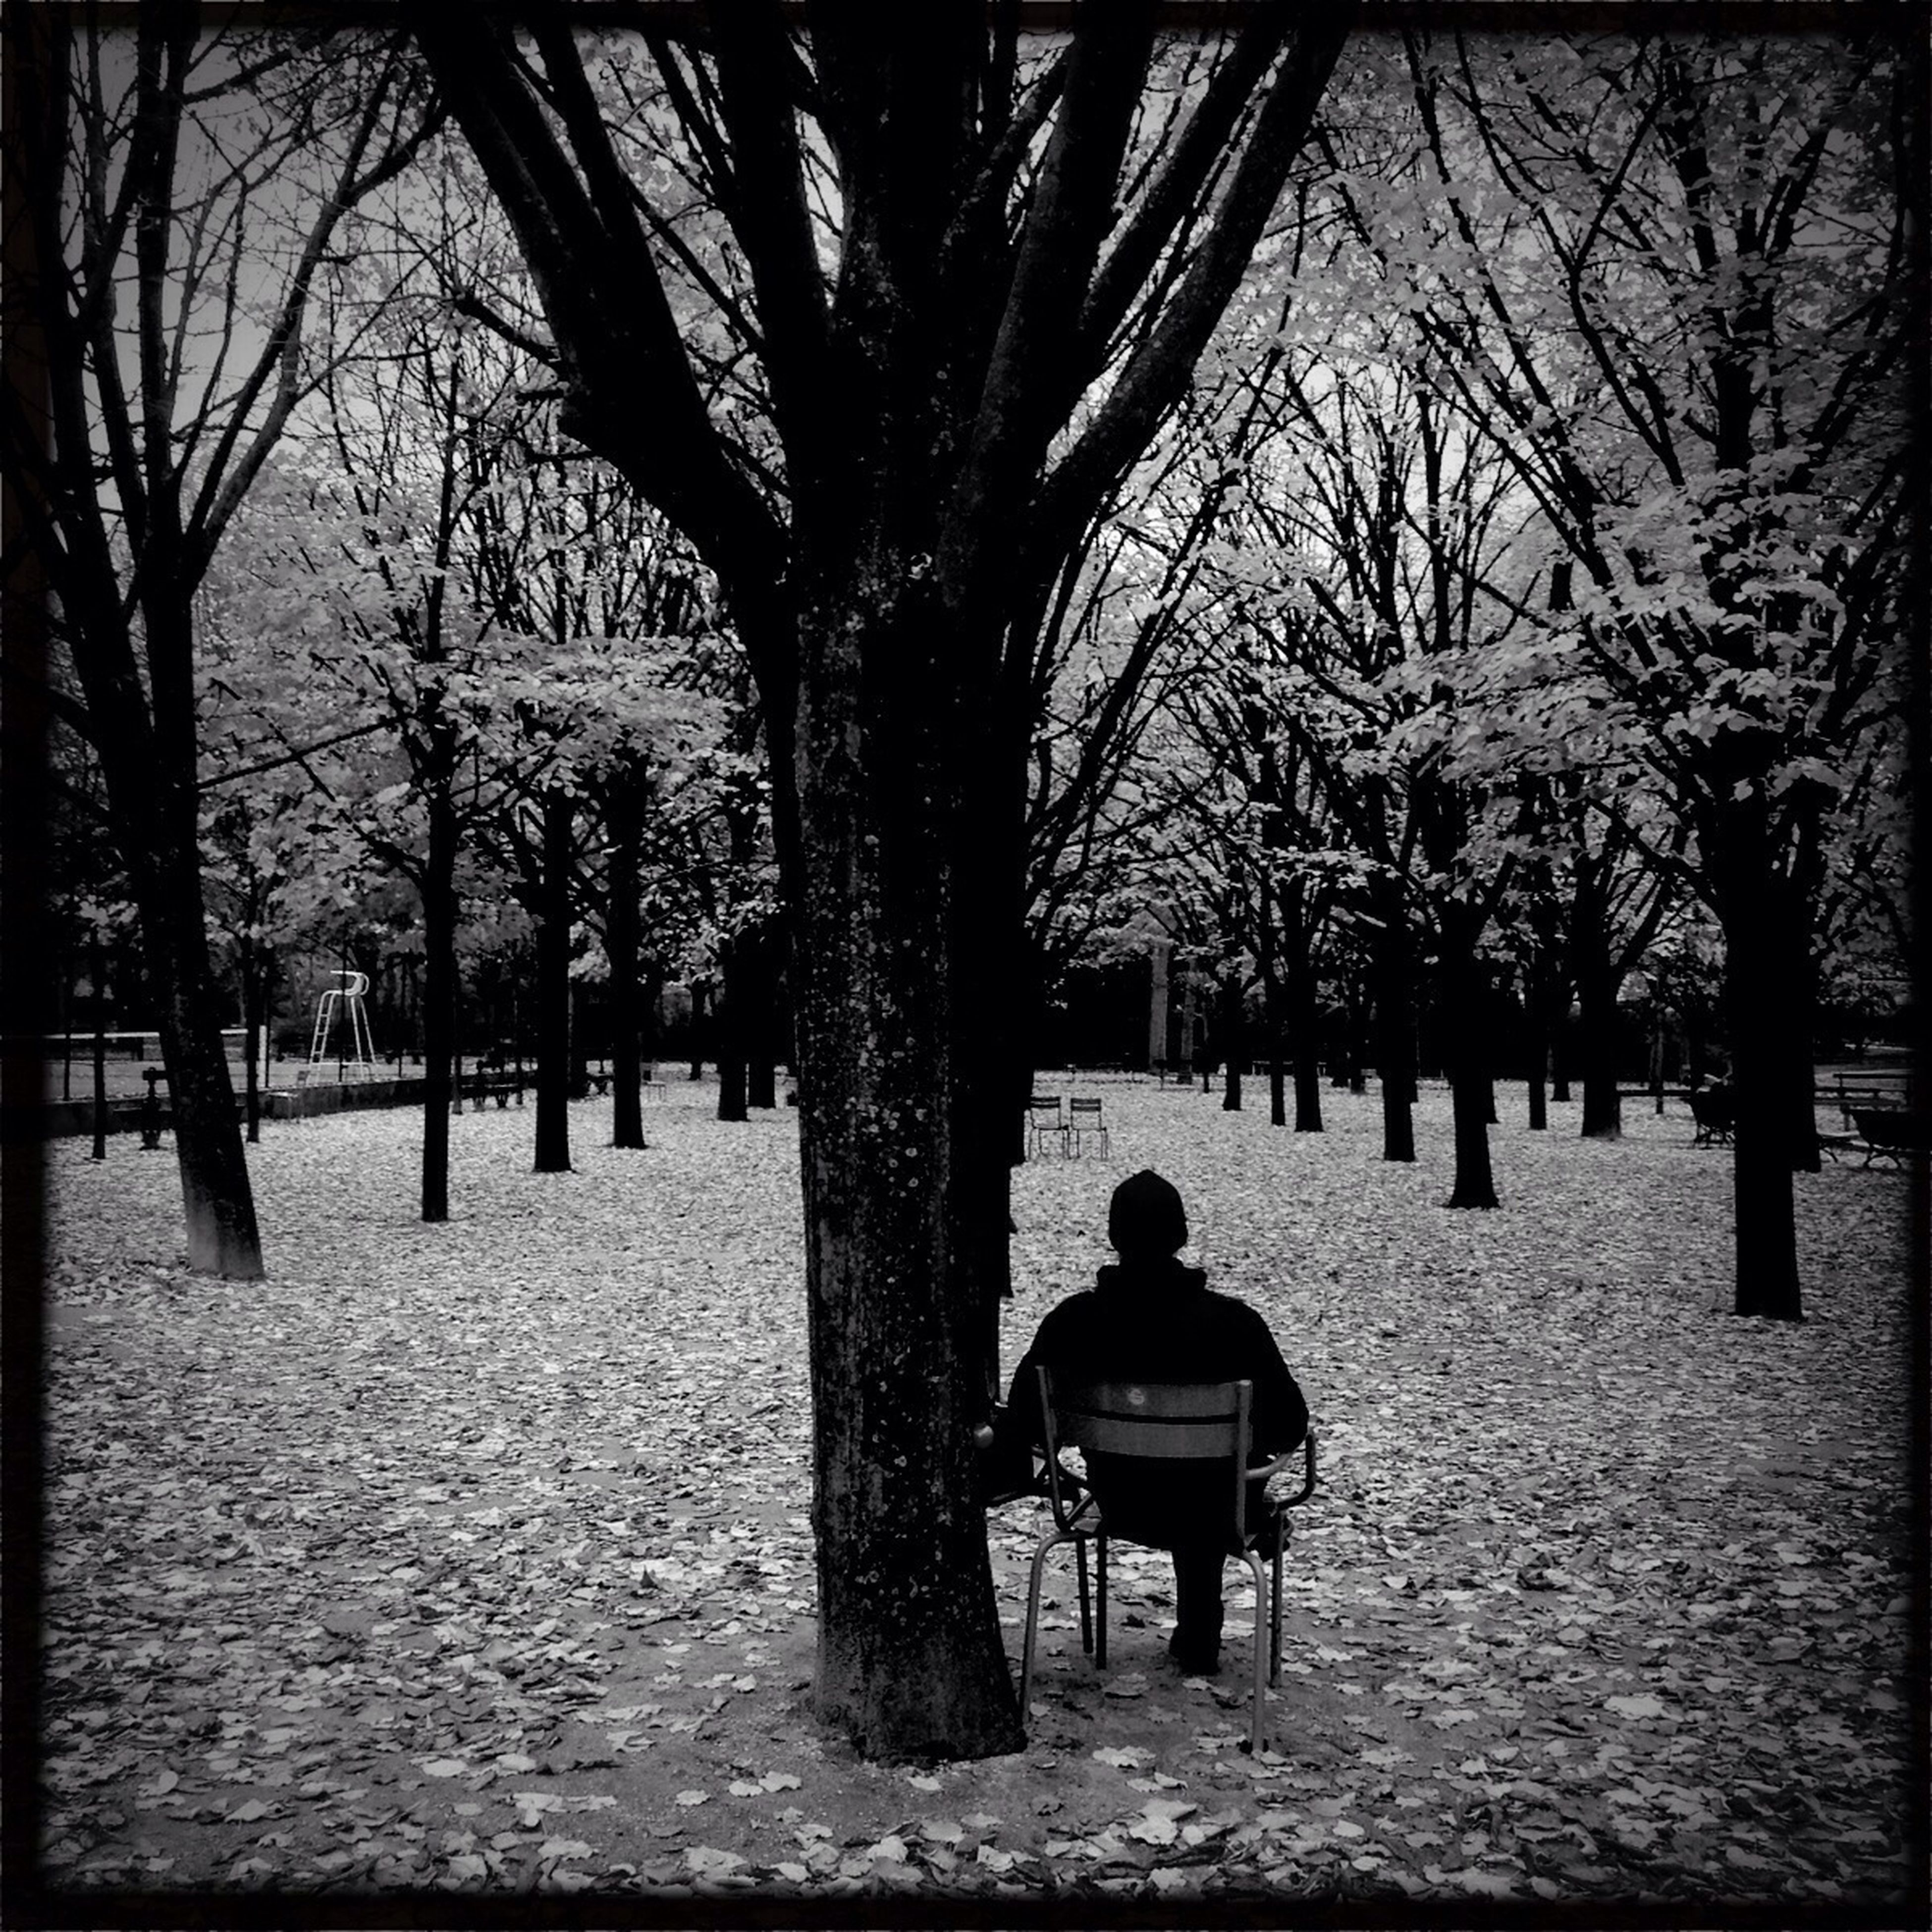 tree, rear view, men, lifestyles, bare tree, leisure activity, bench, tree trunk, person, full length, season, walking, park - man made space, sitting, winter, park, treelined, nature